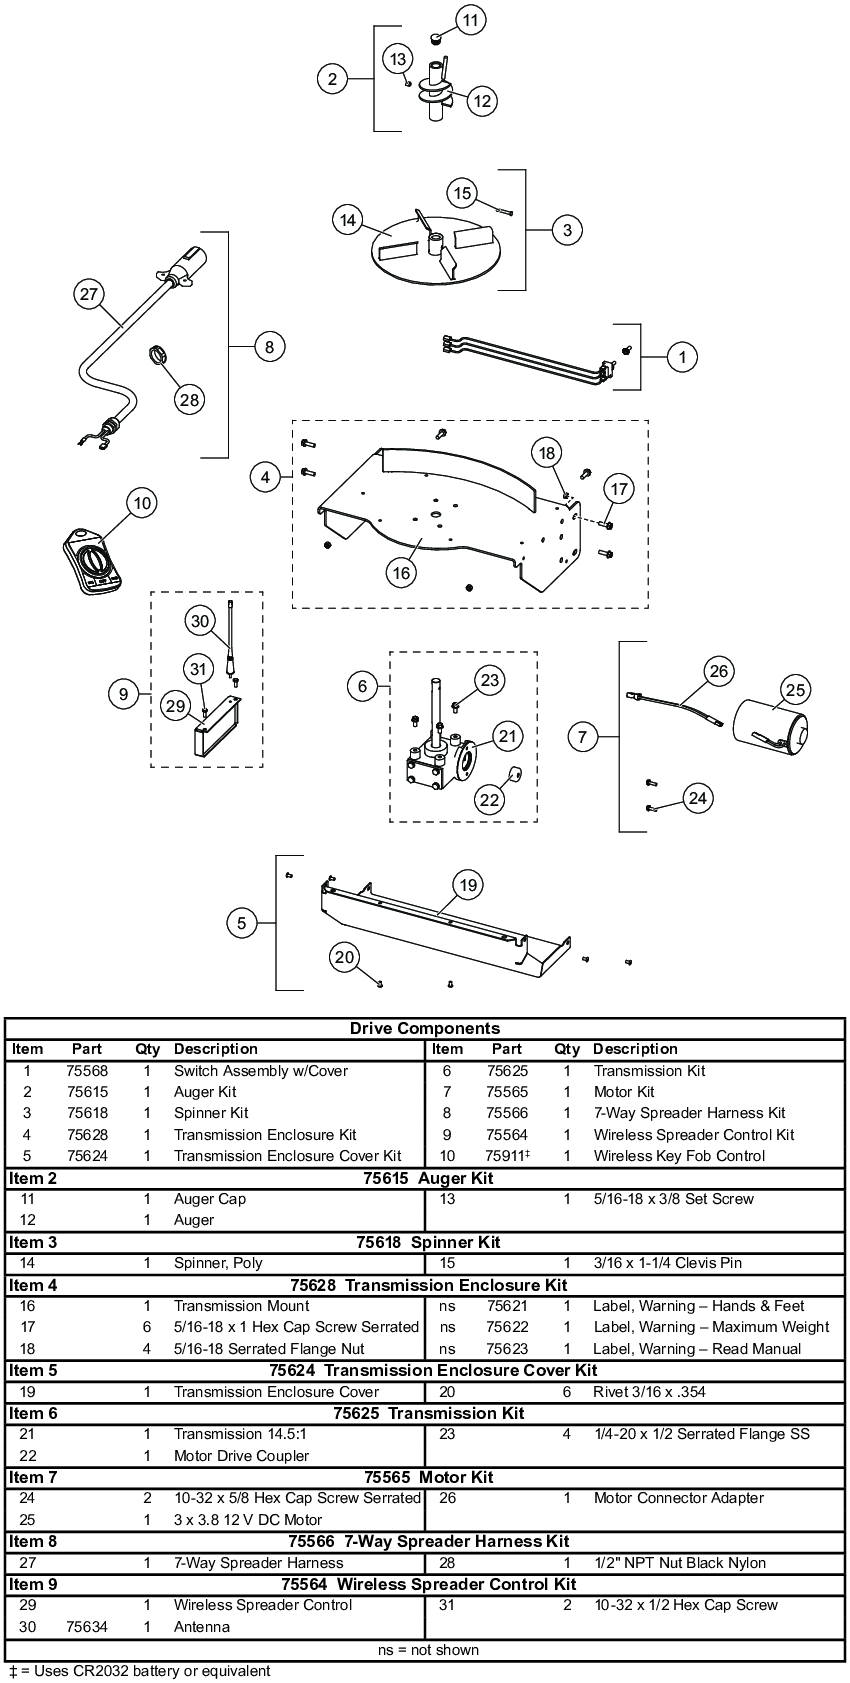 Fisher Quick Caster 300W Drive Parts Diagram